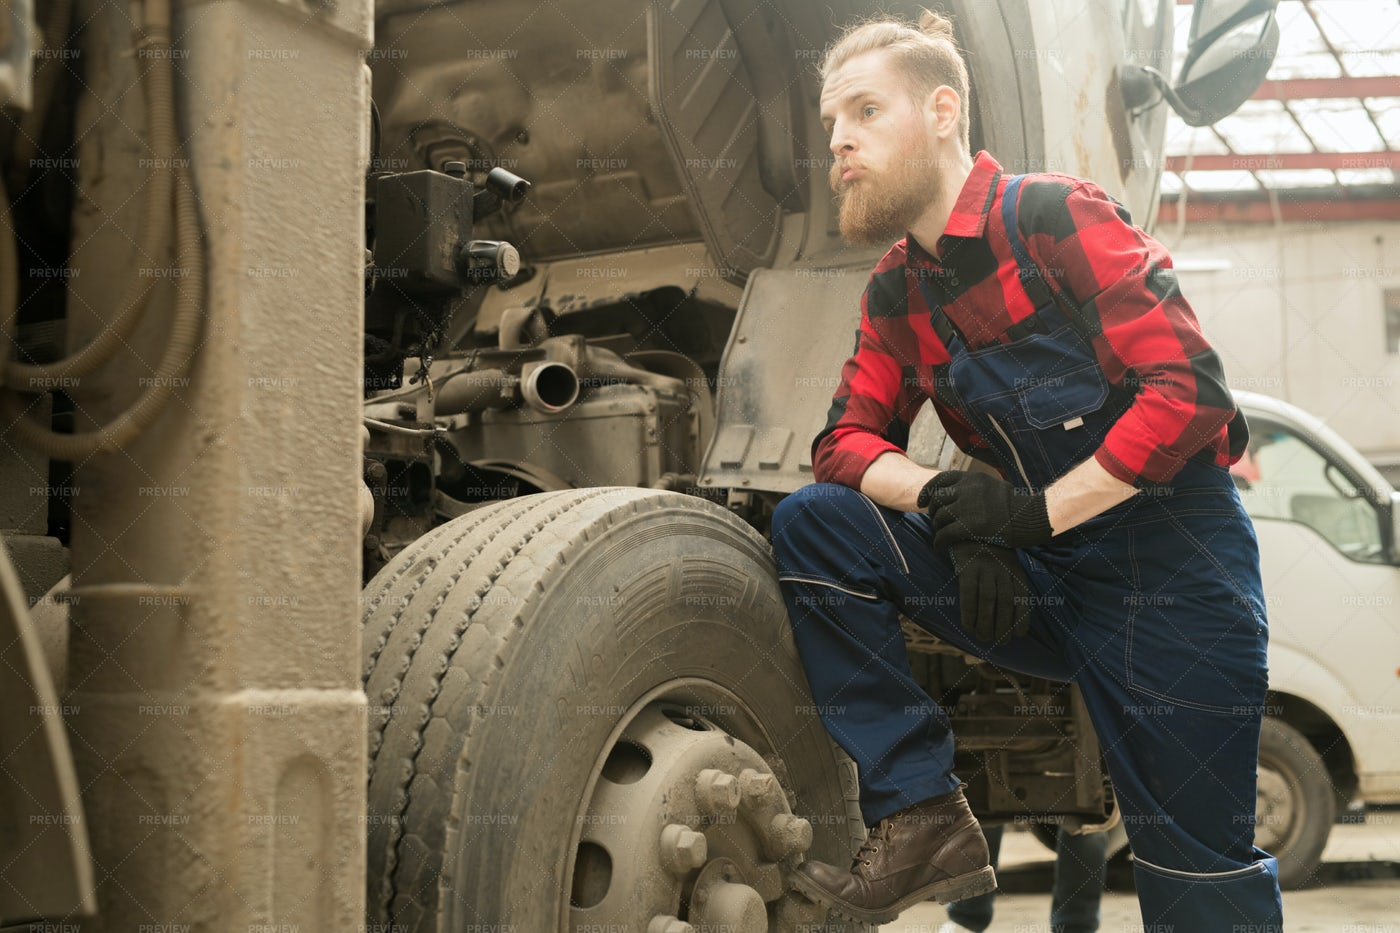 Mechanic Thinking About Truck...: Stock Photos